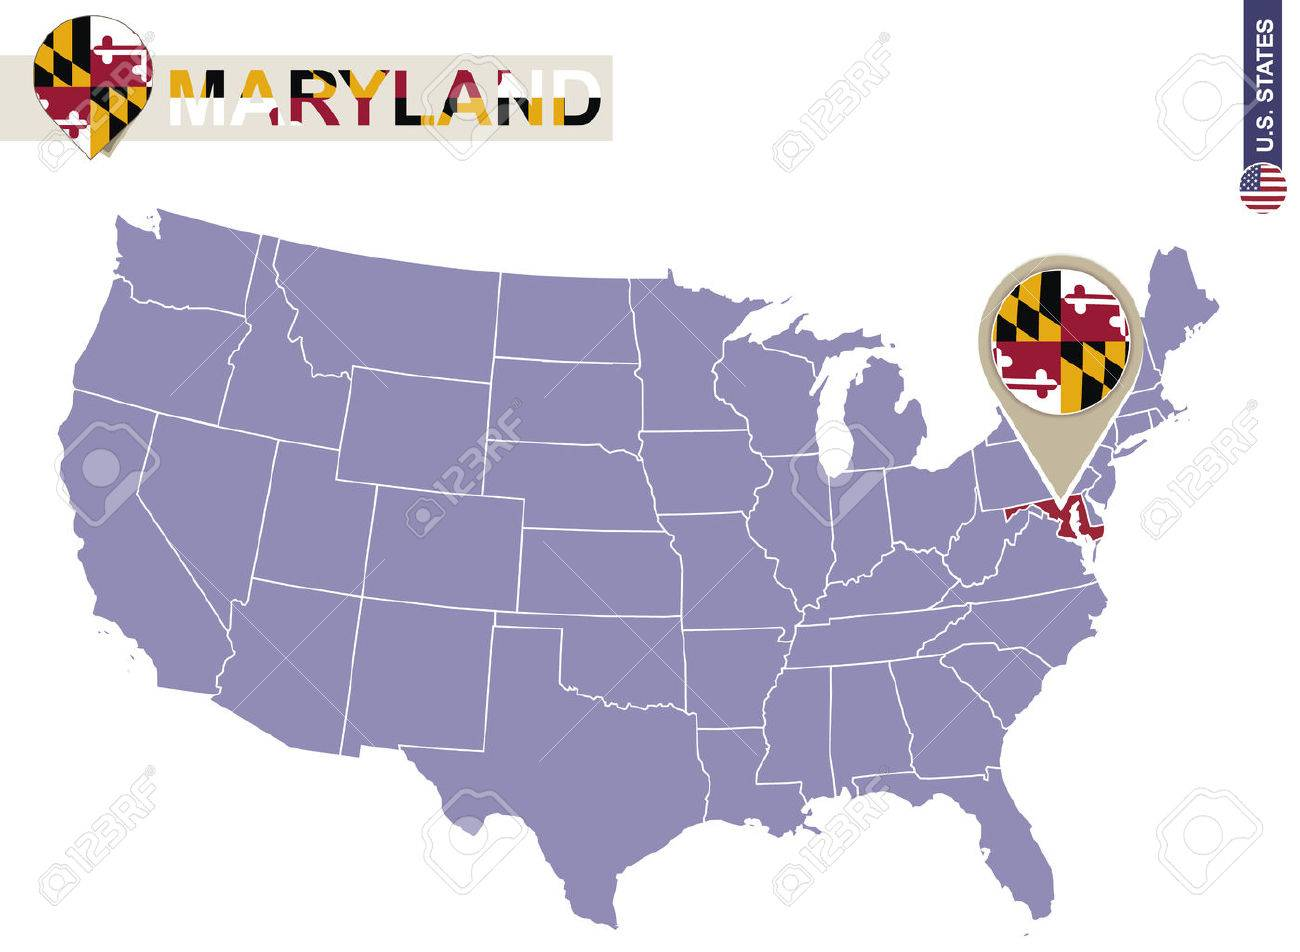 Maryland State On USA Map Maryland Flag And Map US States - Maryland in us map